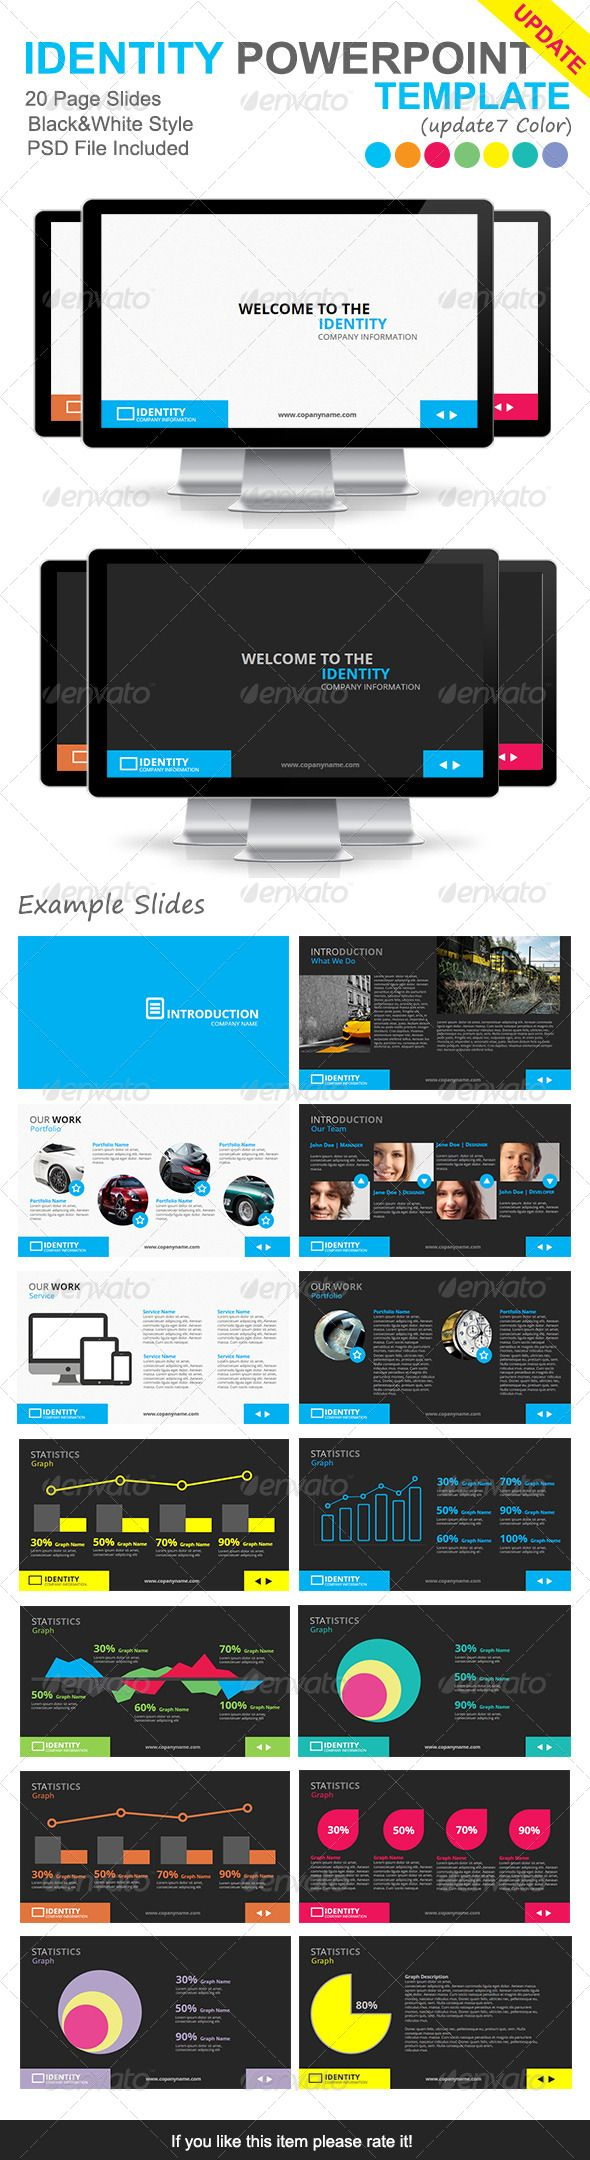 13 best powerpoints images on pinterest presentation layout identity presentation template toneelgroepblik